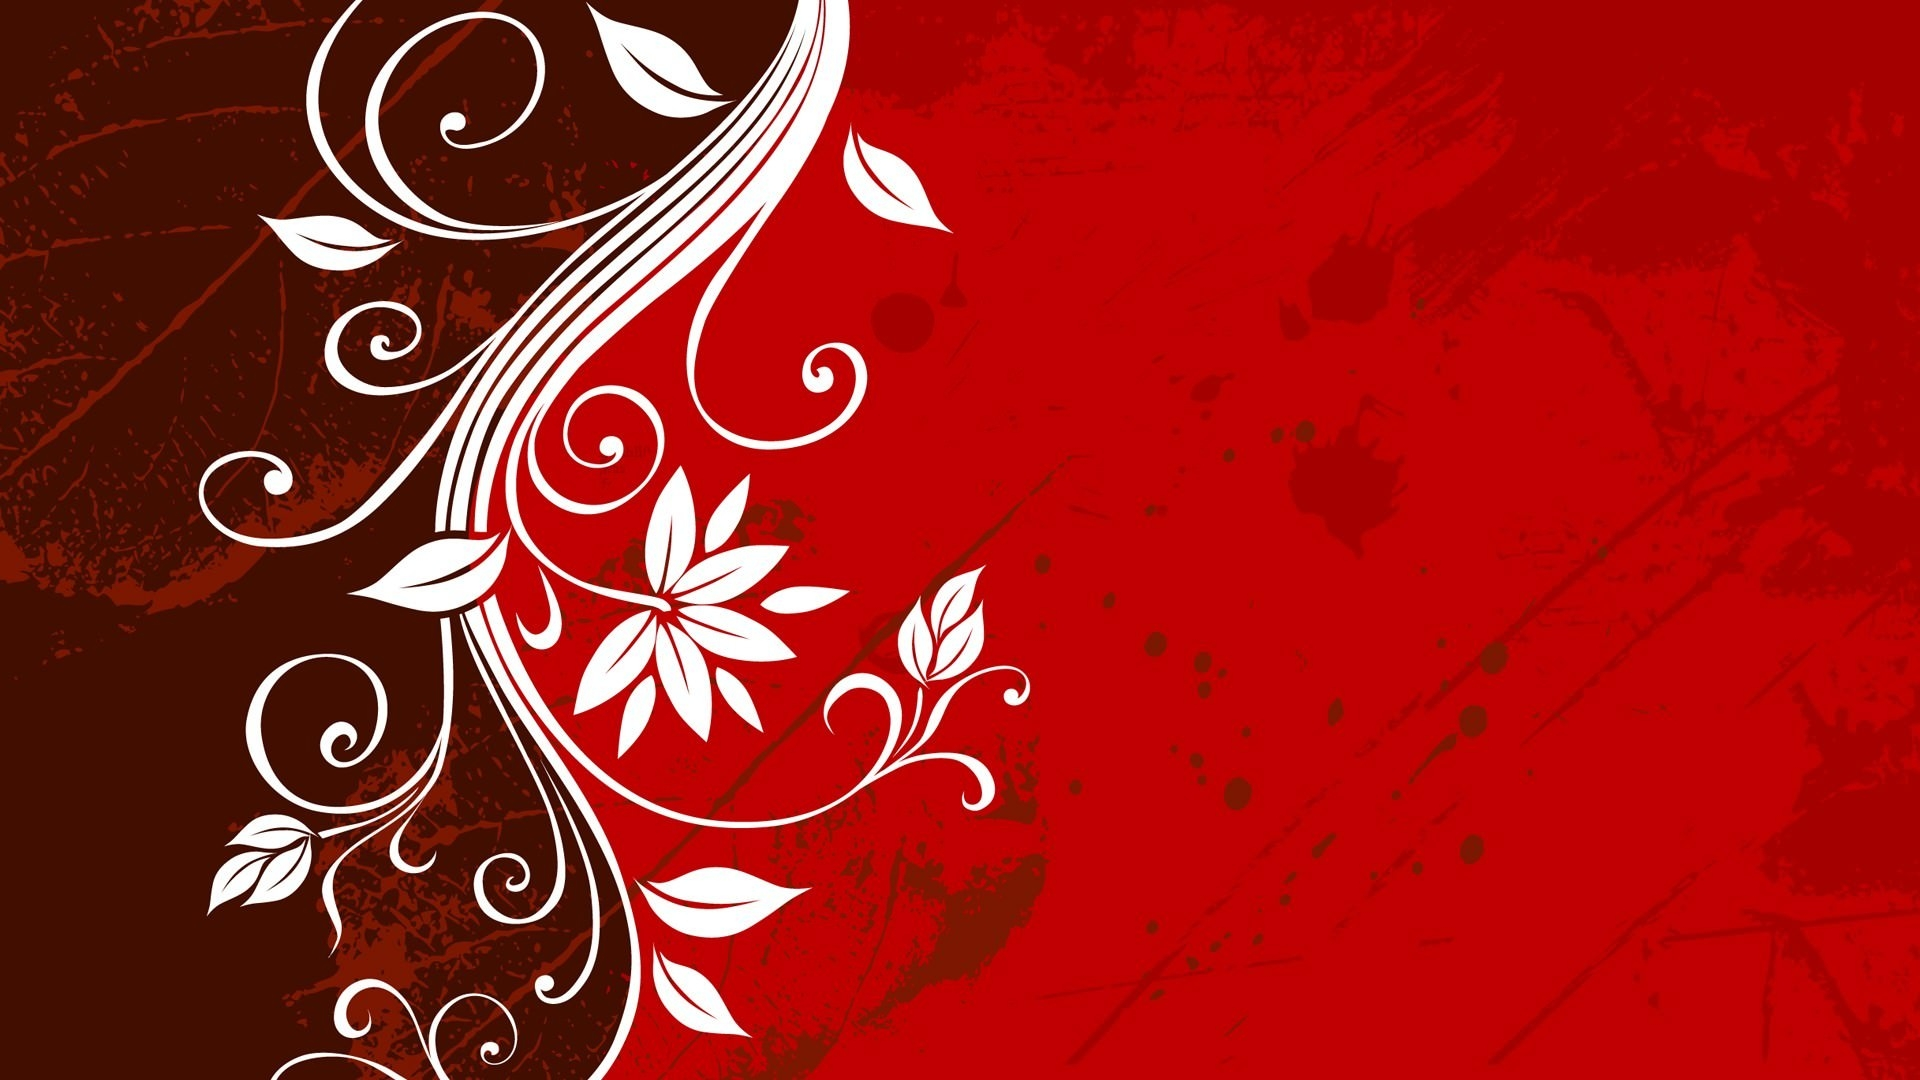 Red Floral HD Wallpaper